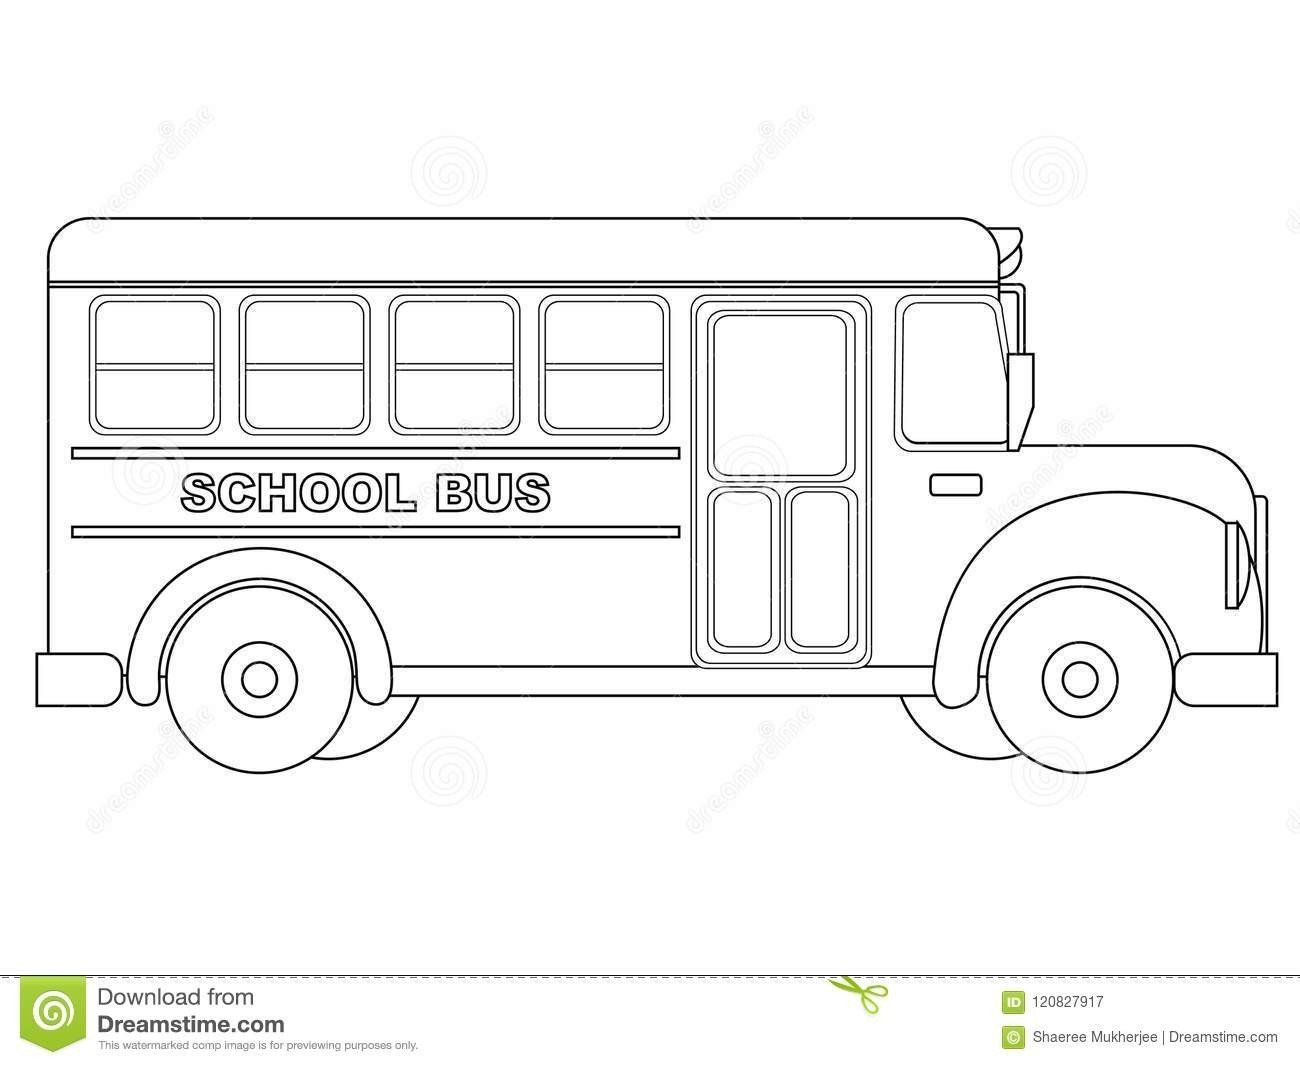 School Bus Coloring Page Inspirational Best Dltk School Bus Coloring Pages Lovespe In 2020 Preschool Coloring Pages School Coloring Pages Kindergarten Coloring Pages